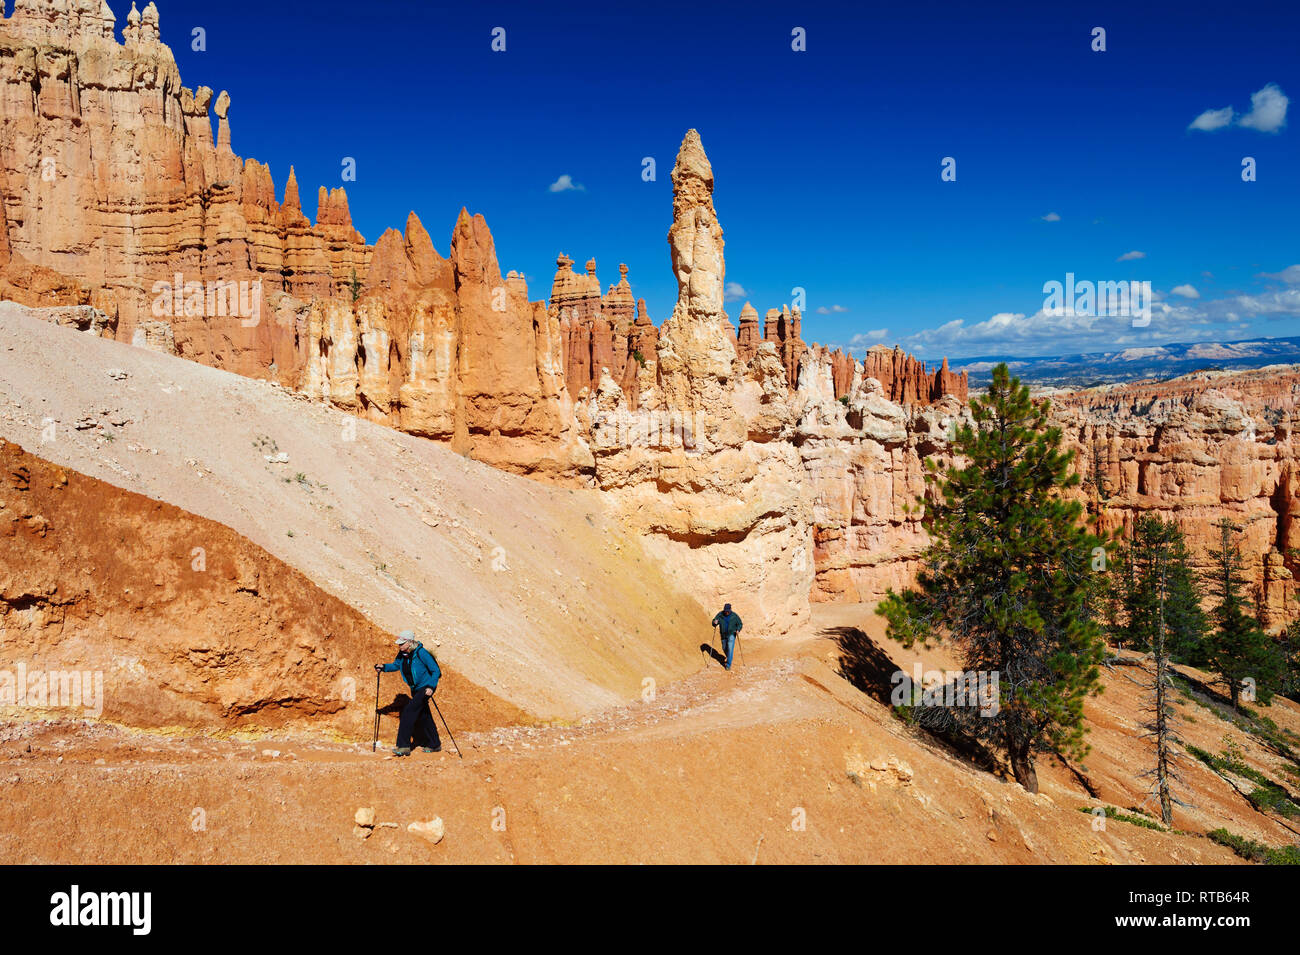 couple-hiking-in-the-mesmerising-environment-of-bryce-canyon-national-park-utah-on-a-bright-sunny-day-RTB64R.jpg